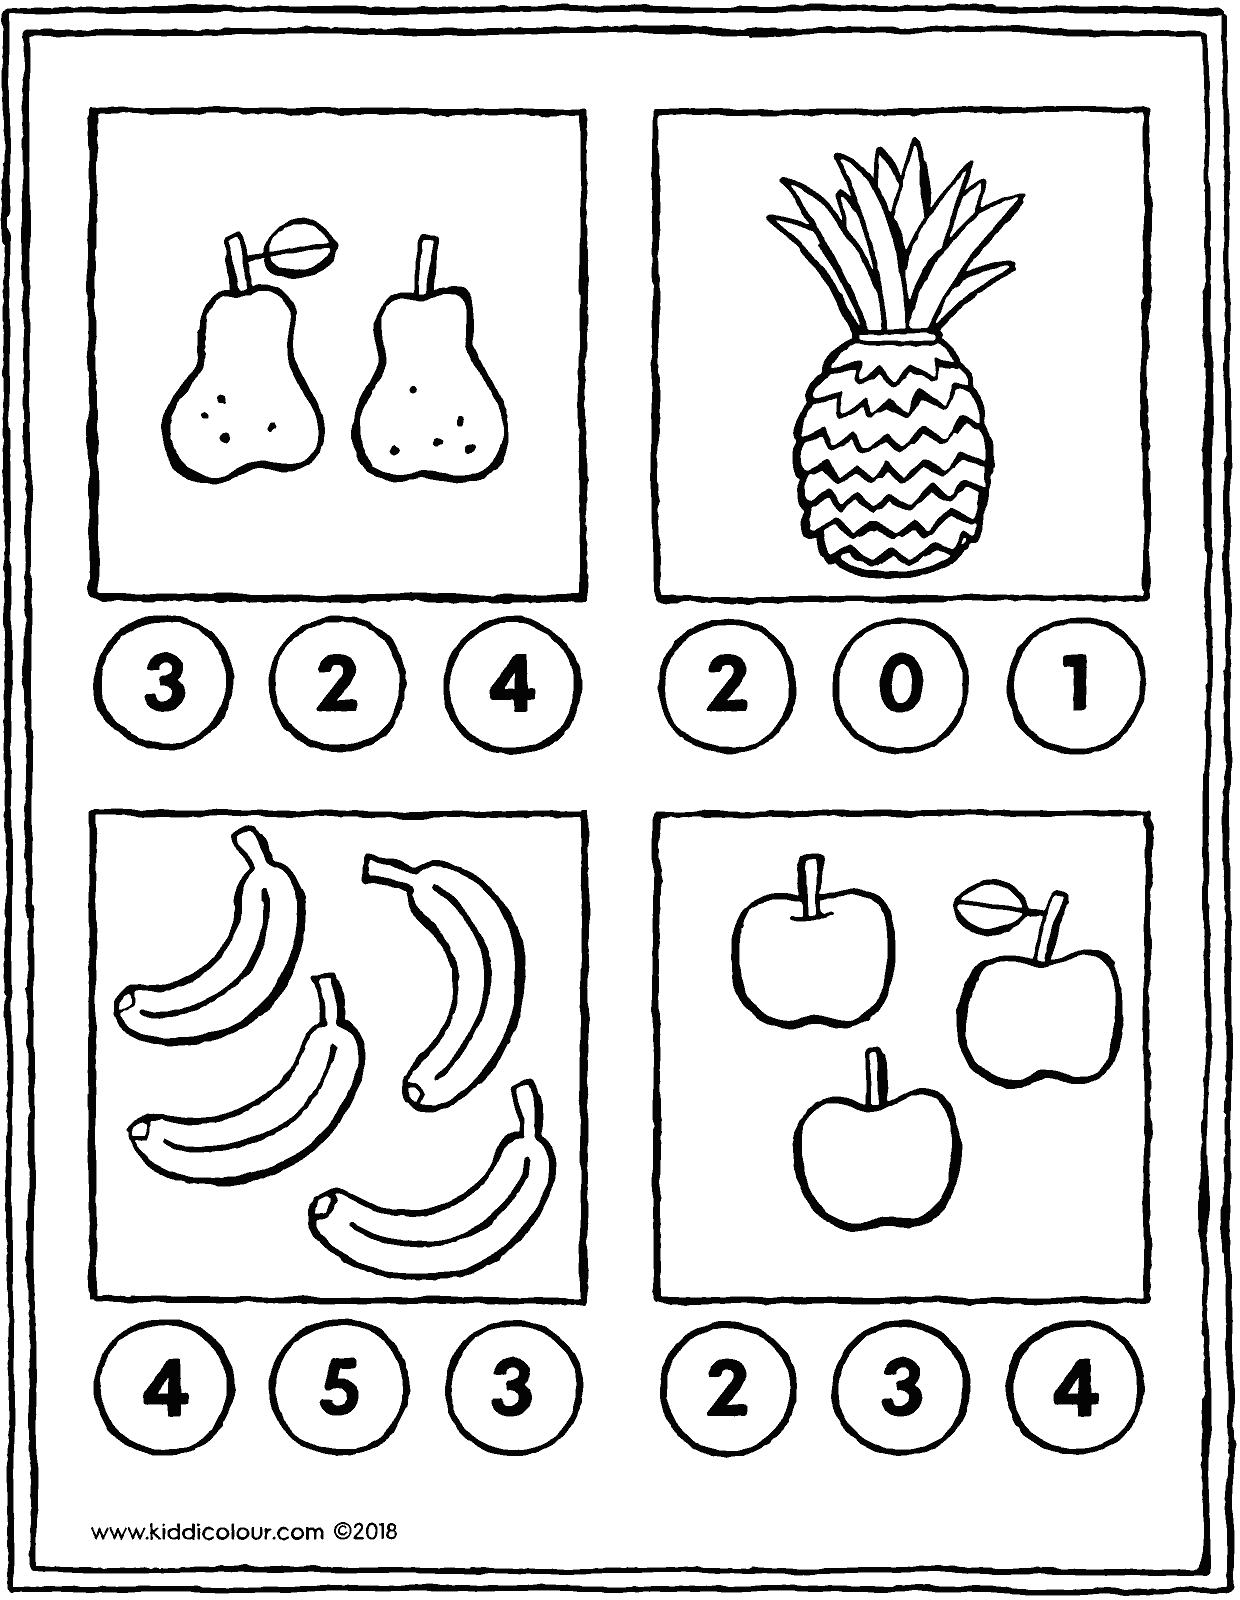 math game count the pieces of fruit colouring page drawing picture 01V